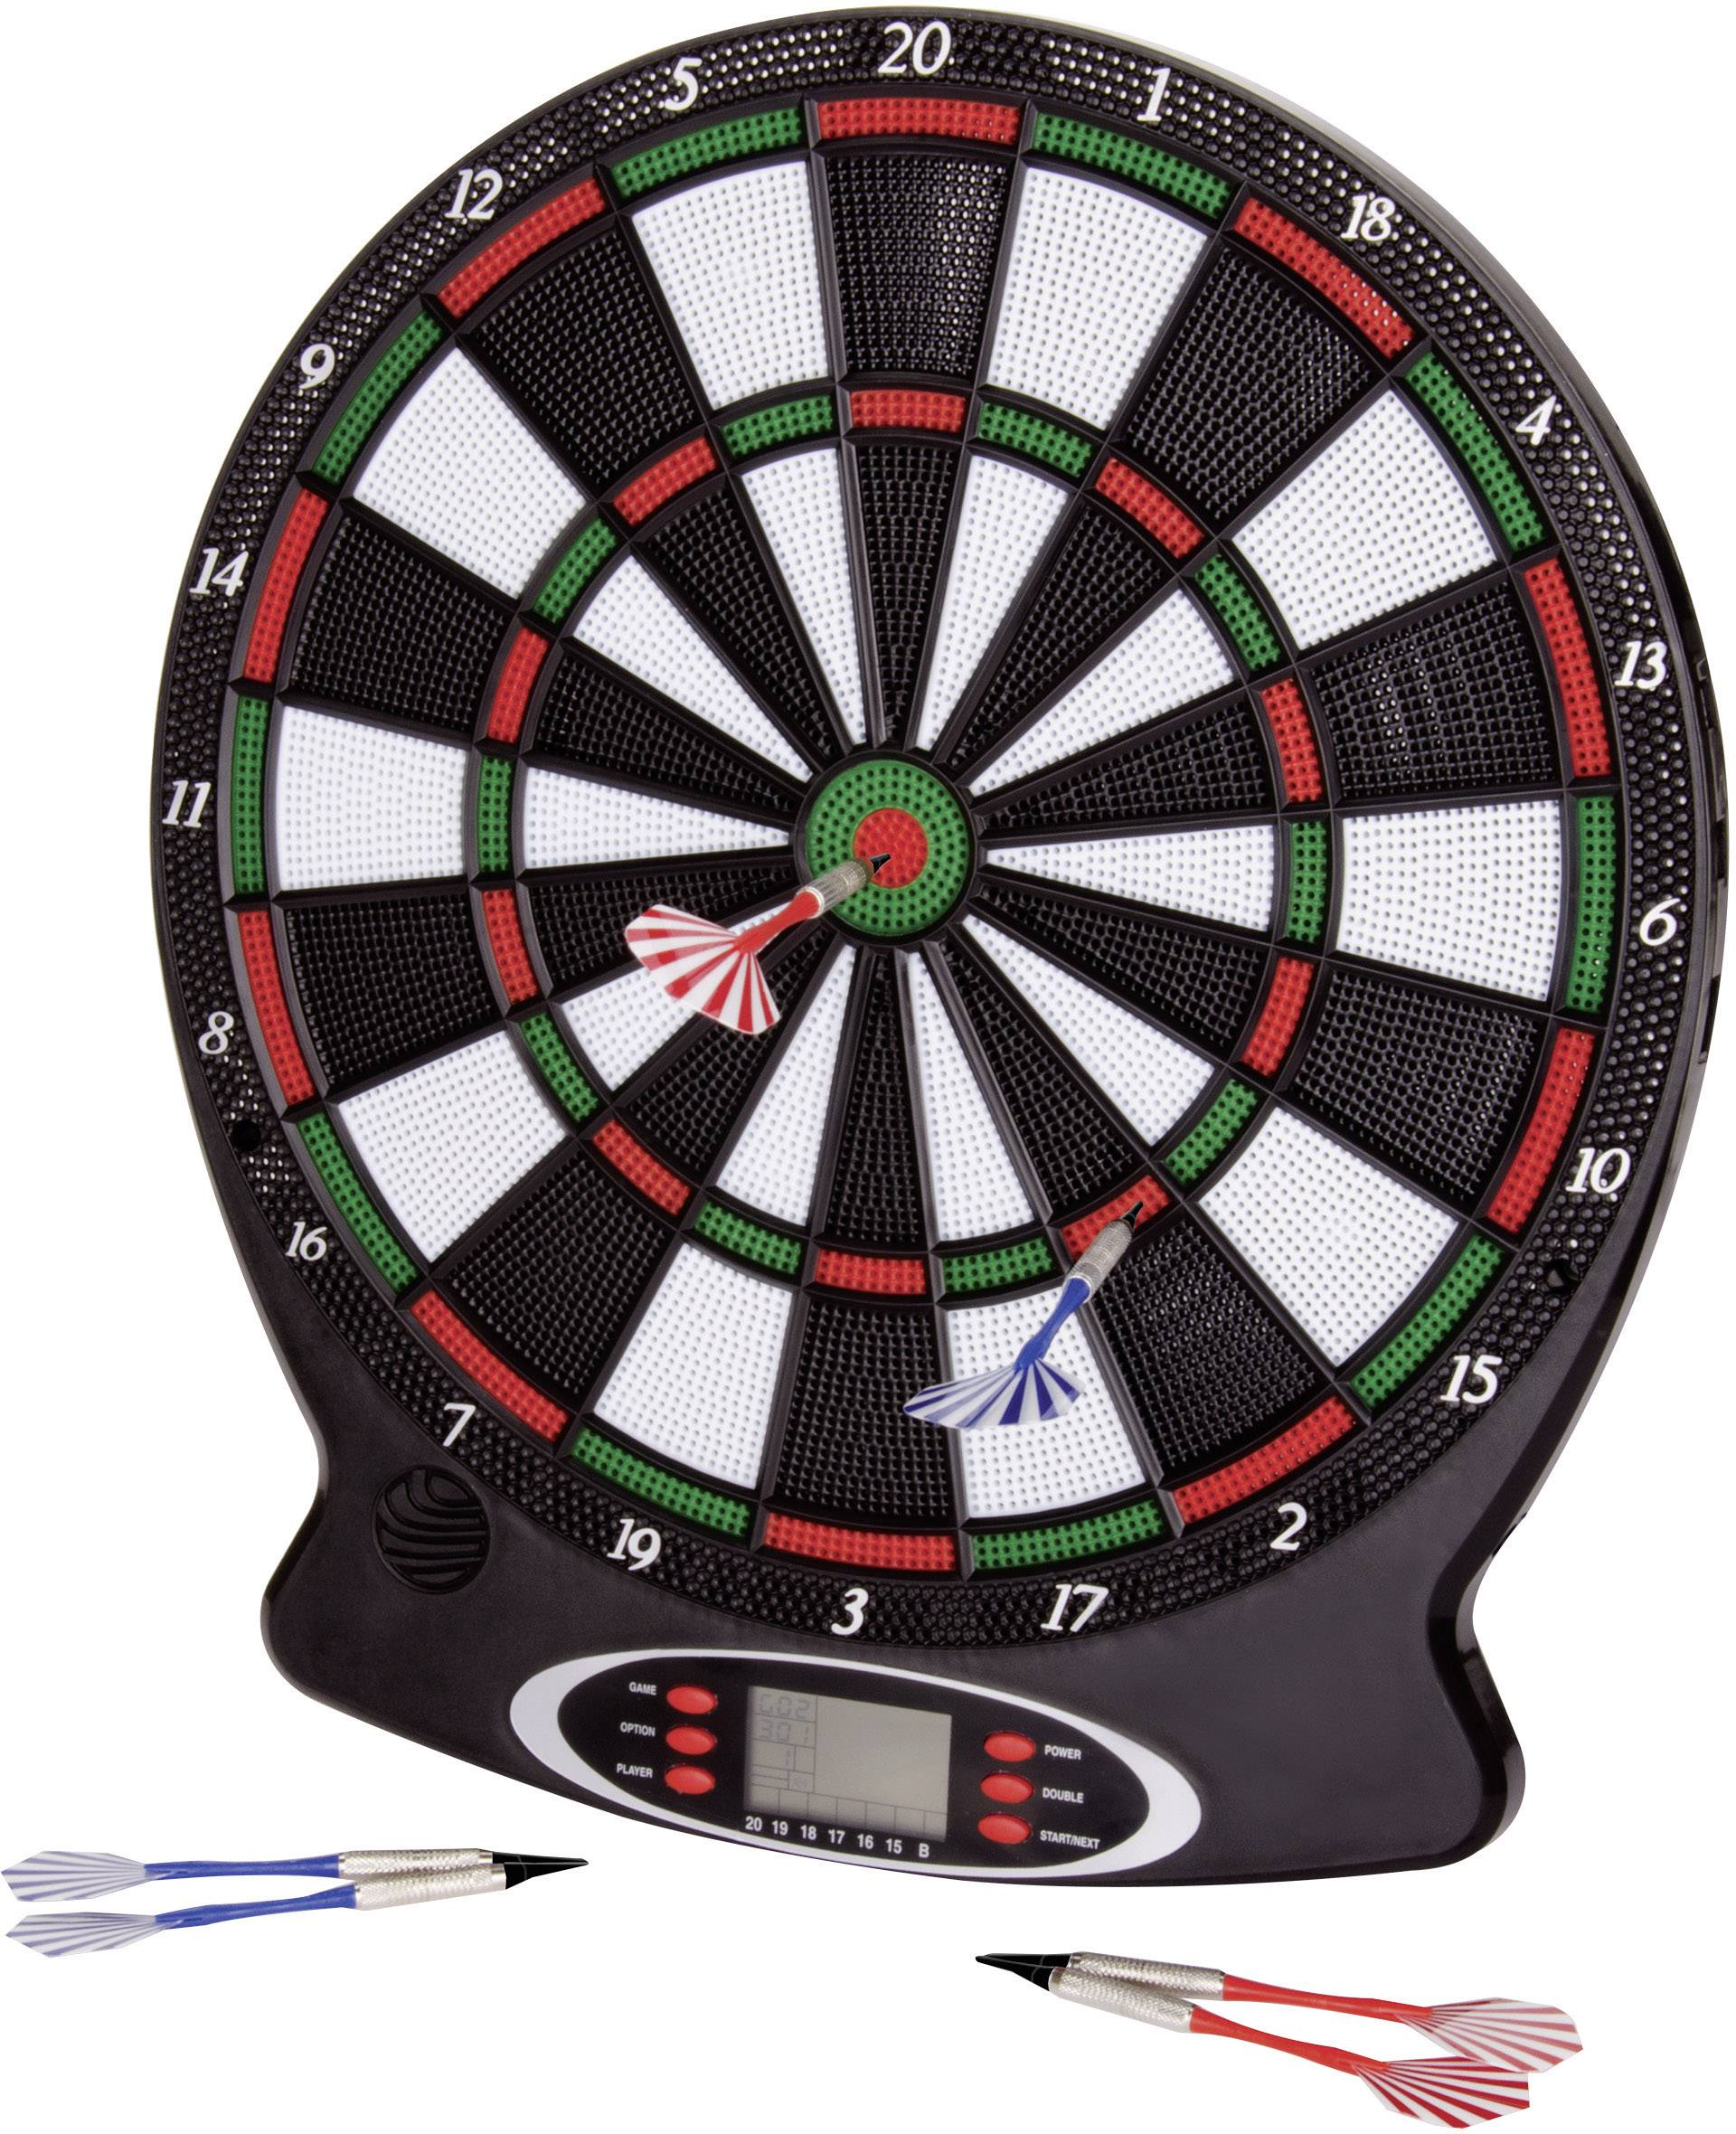 New Sports Elektronisch Dart Board